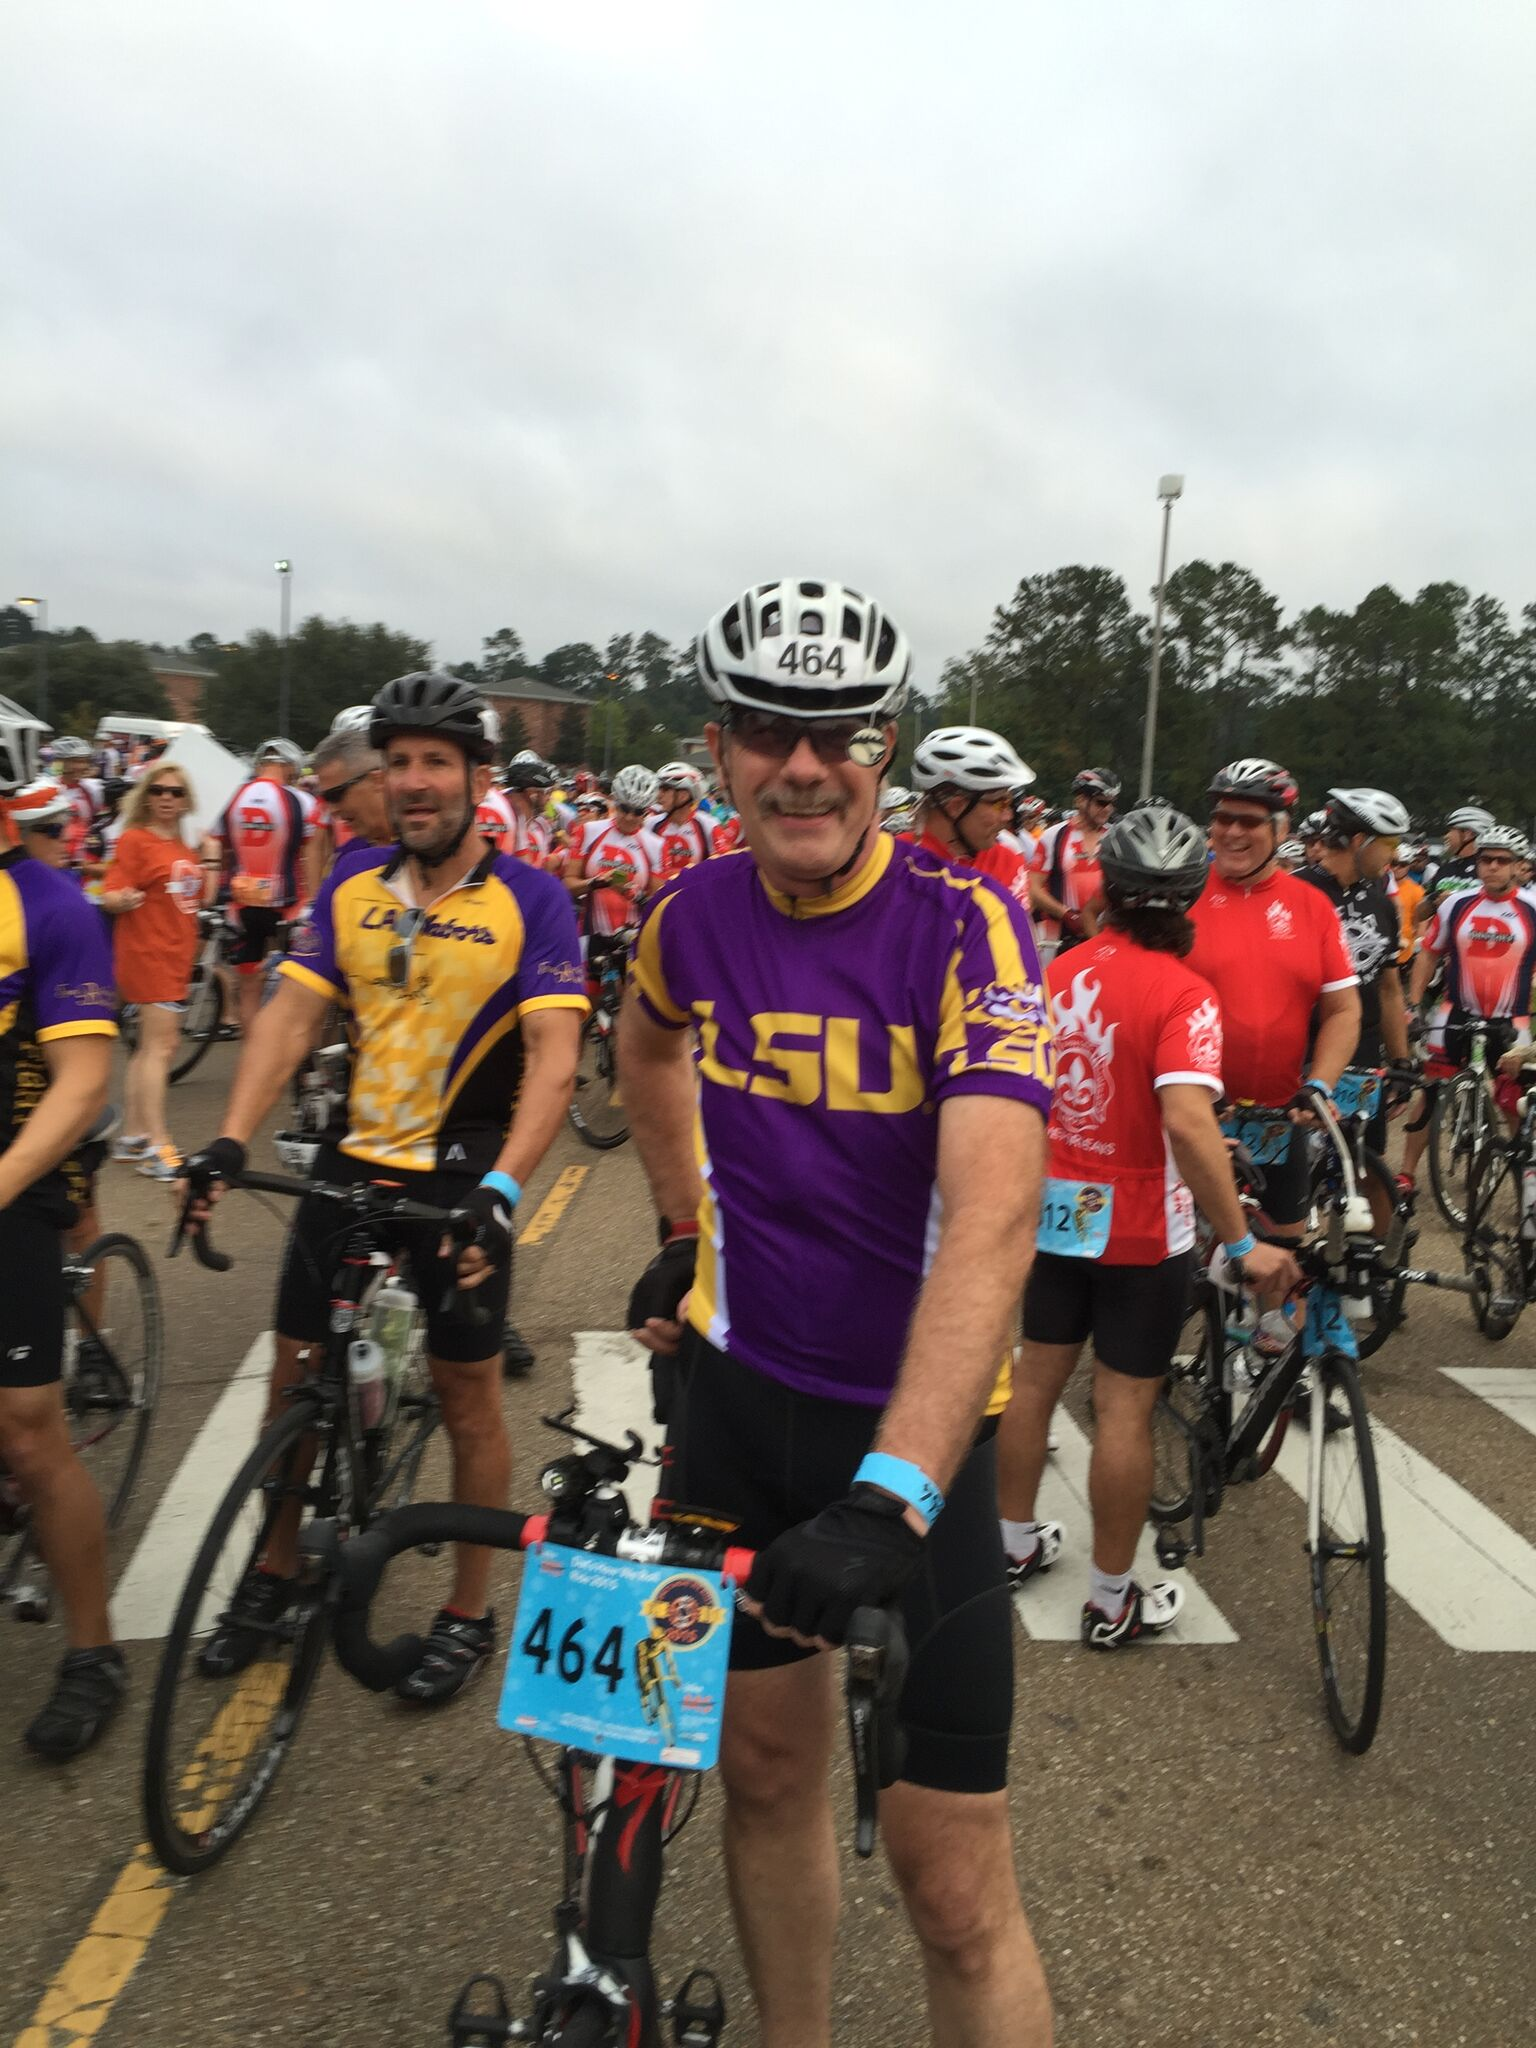 Ric is an enthusiastic road bicyclist and is our liaison with the the Baton Rouge Bike Club, who put on road bicycling events such as group rides, educational events and their annual Century ride in St Francisville. Like most of us, Ric is new to the Bike BR Board.